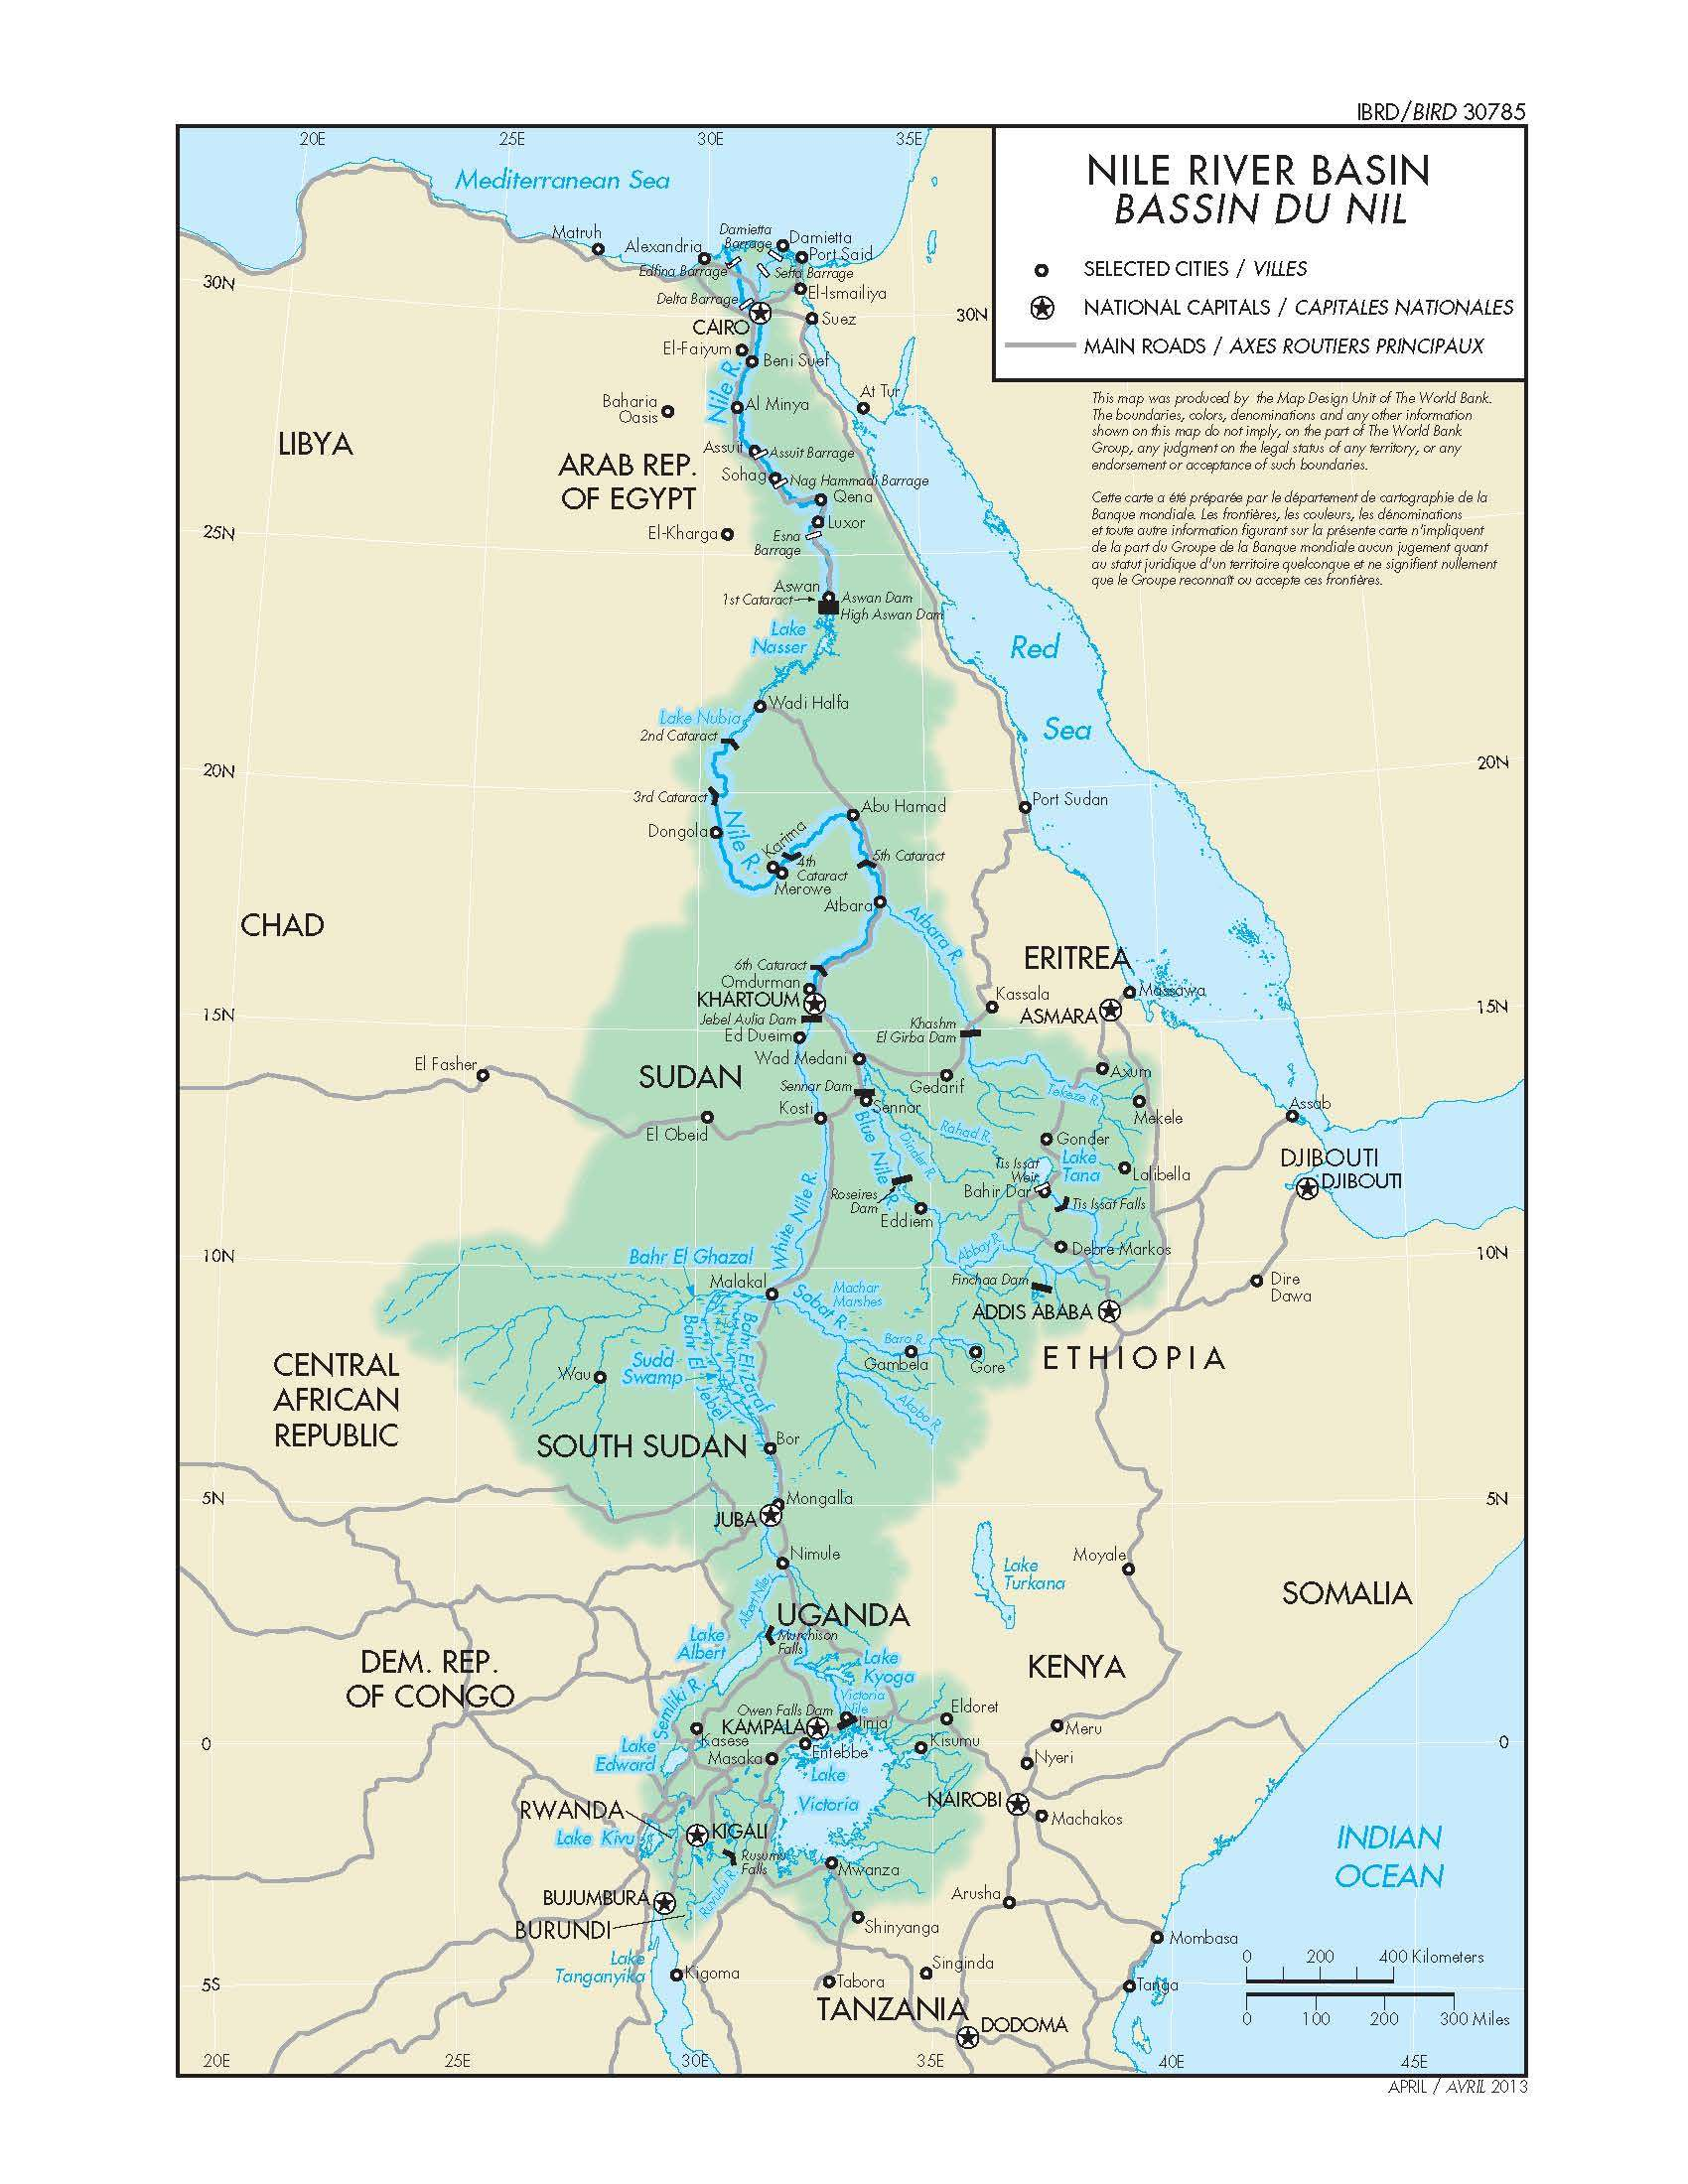 Map of the Nile Basin, World Bank, 2013